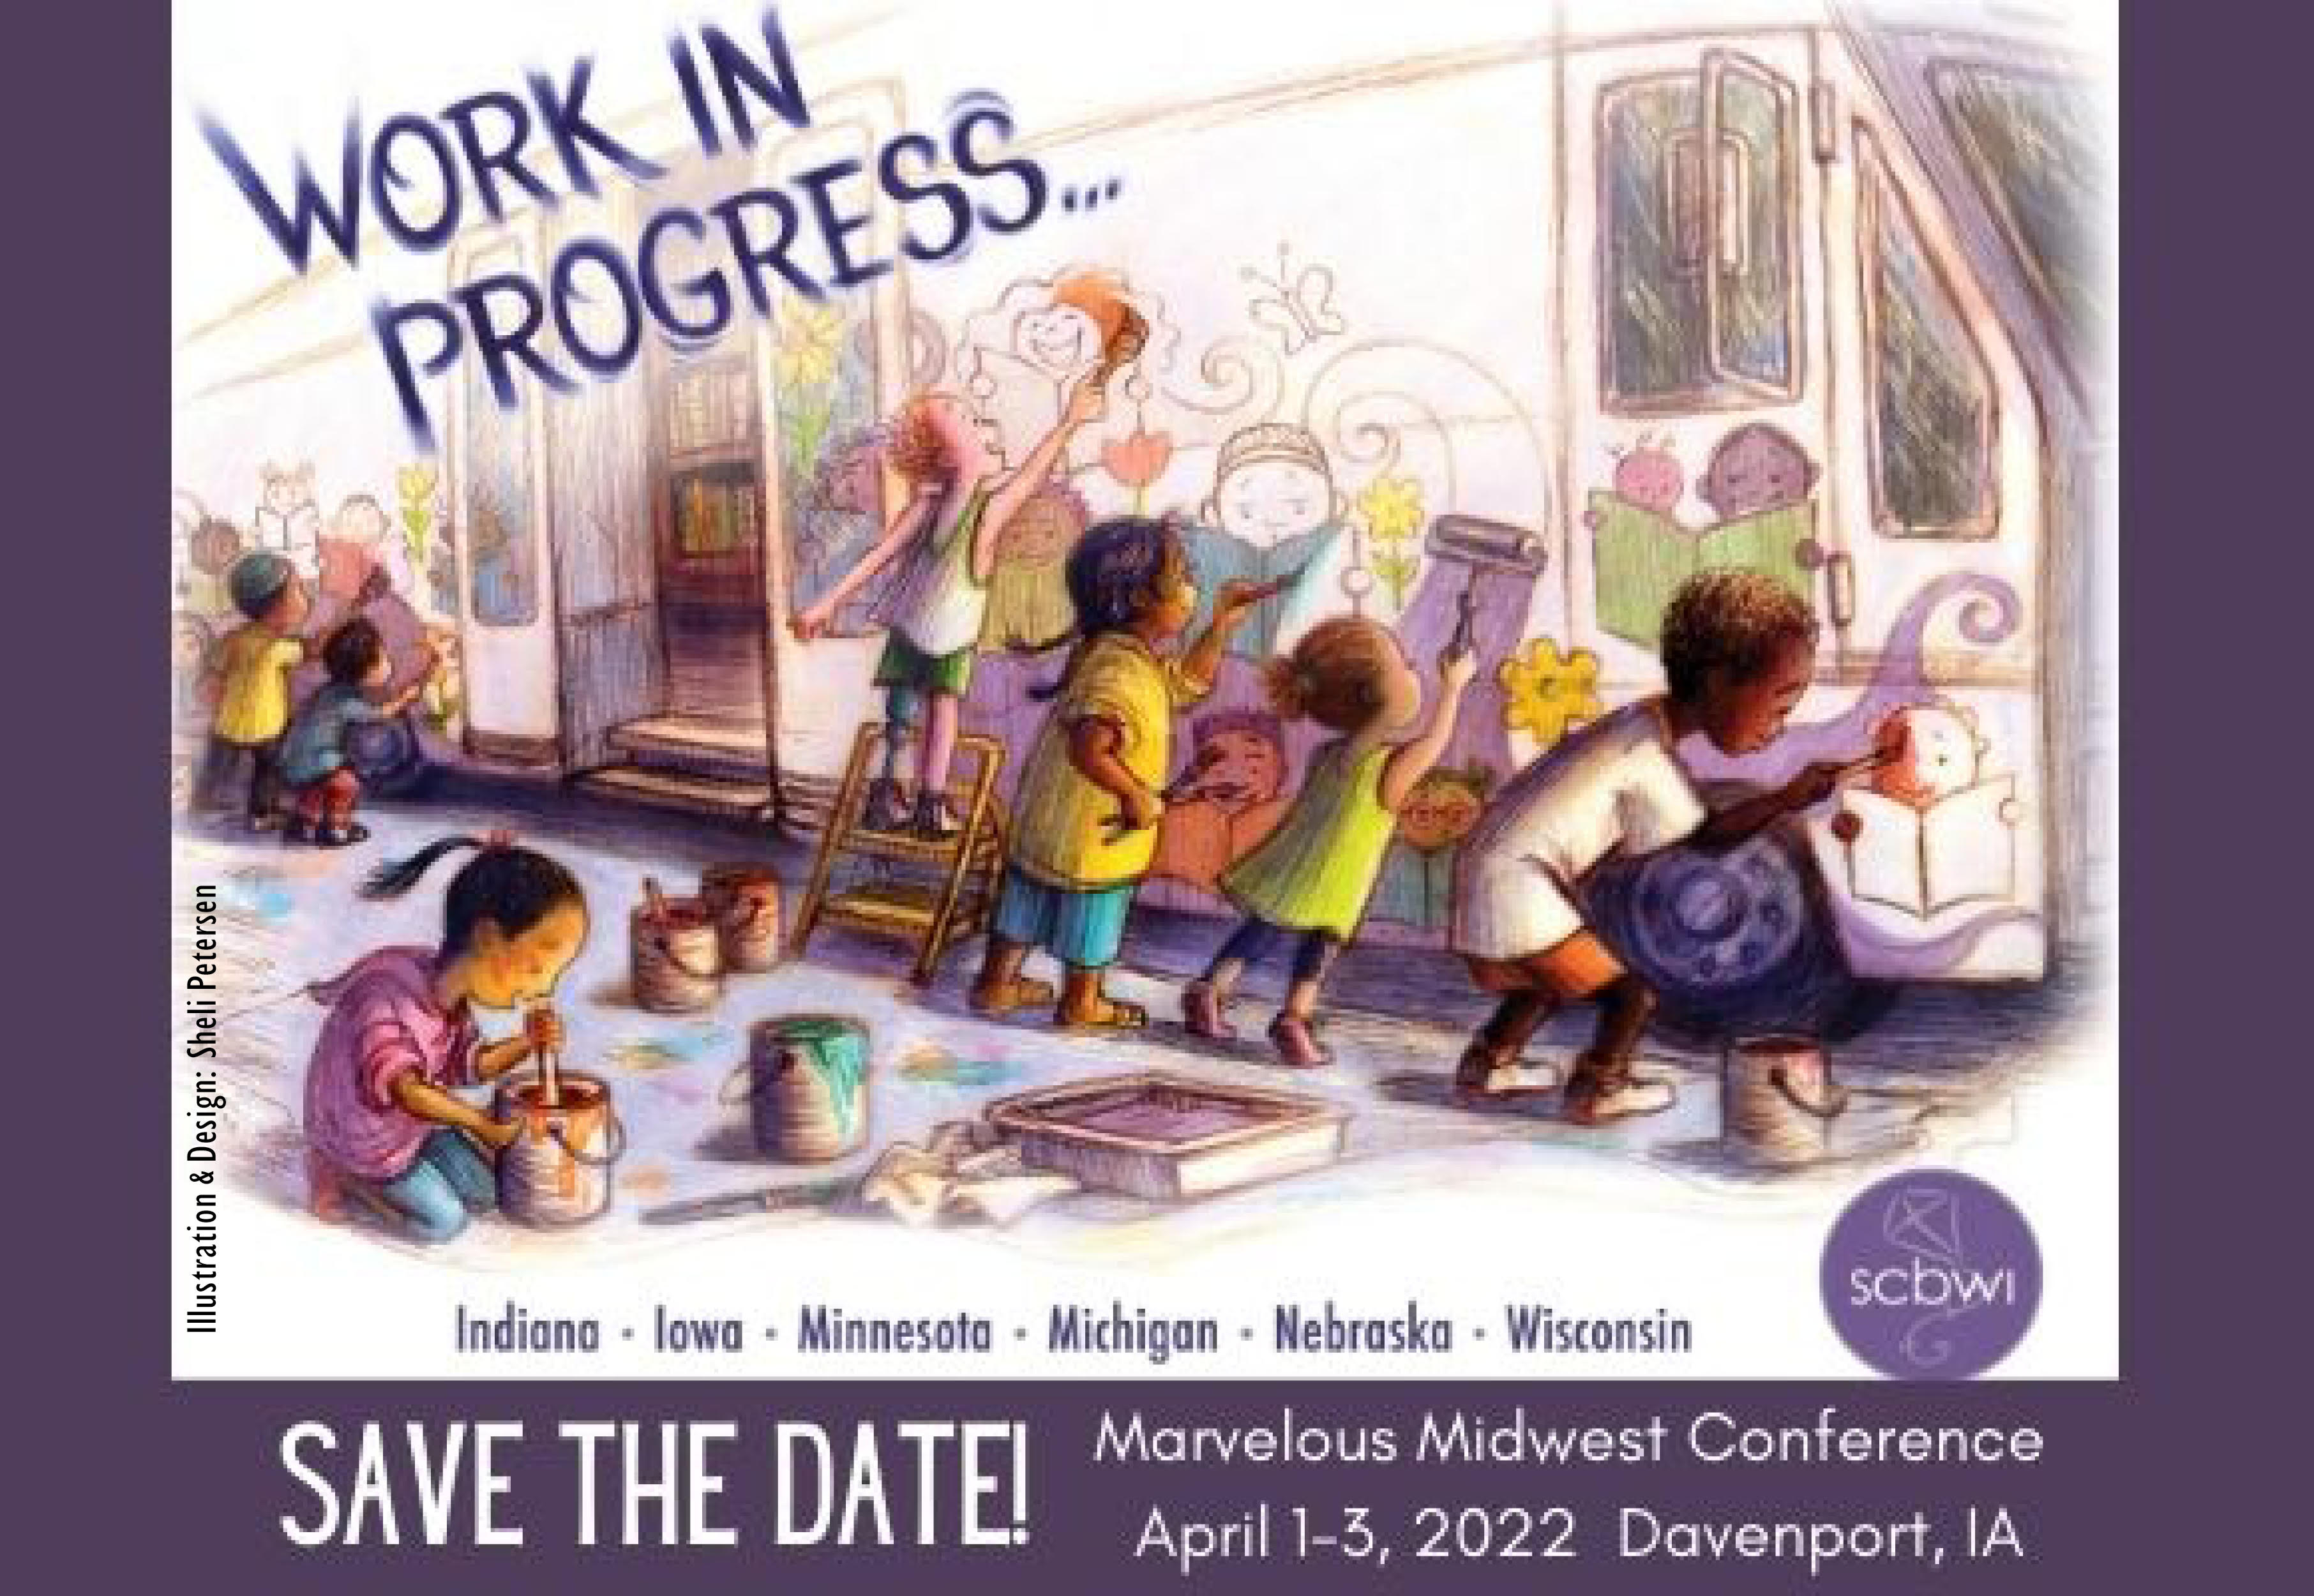 This multi-region conference is designed to give you a large SCBWI NYC or LA conference experience closer to home. Featuring over 35 faculty members sharing content for writers and illustrators that will move your Work In Progress and your career forward. Make industry connections. Get a portfolio review or critique. Have access to acquiring editors, agents, and art directors. Find your people and make lasting relationships. Start your planning now to join in! Much more information to come. Stay tuned.